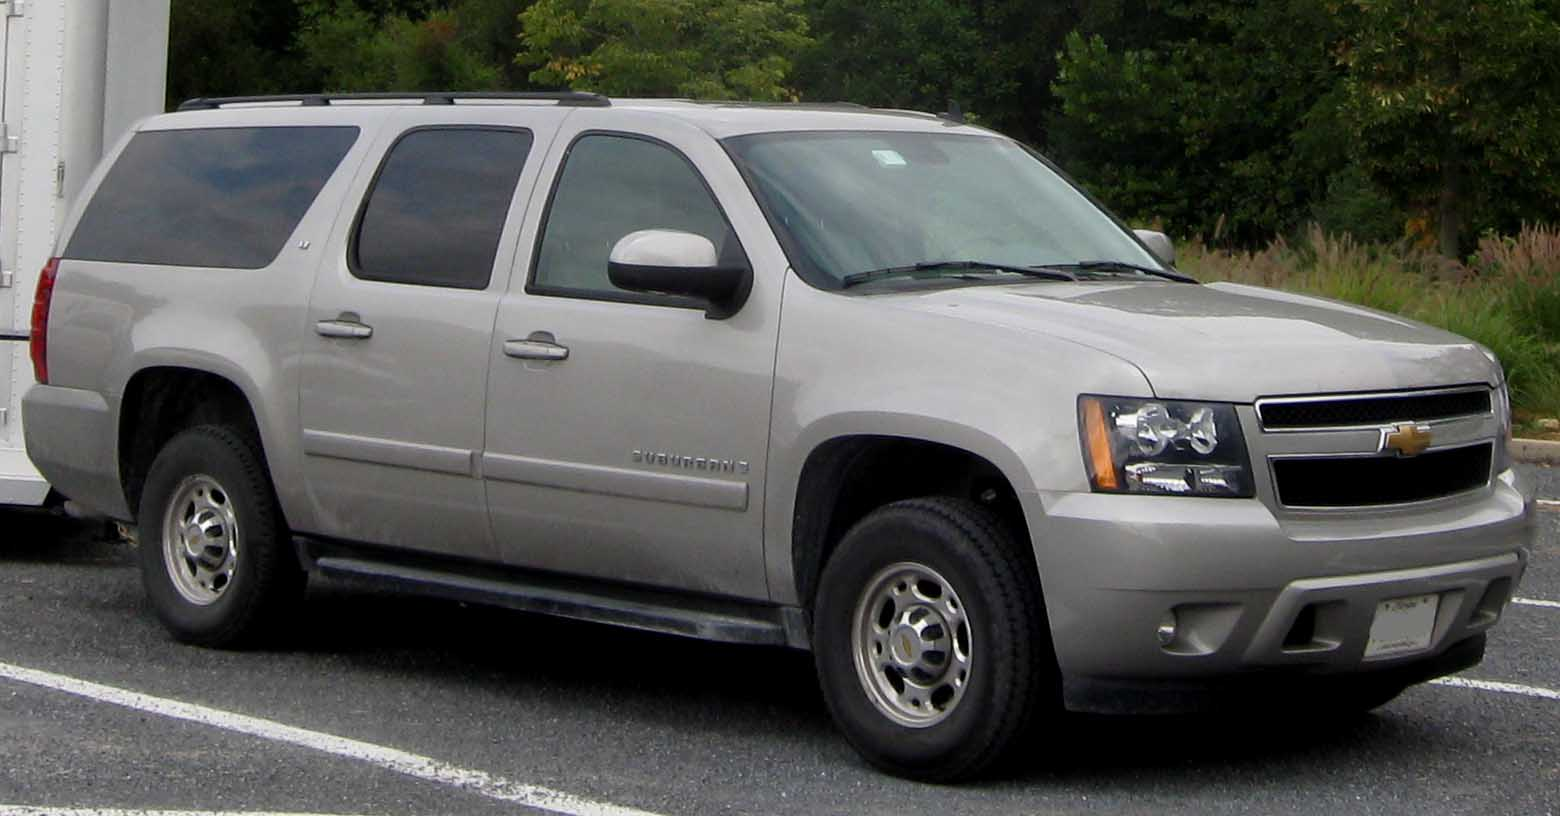 http://upload.wikimedia.org/wikipedia/commons/4/42/Chevrolet_Suburban_LT_GMT900.jpg